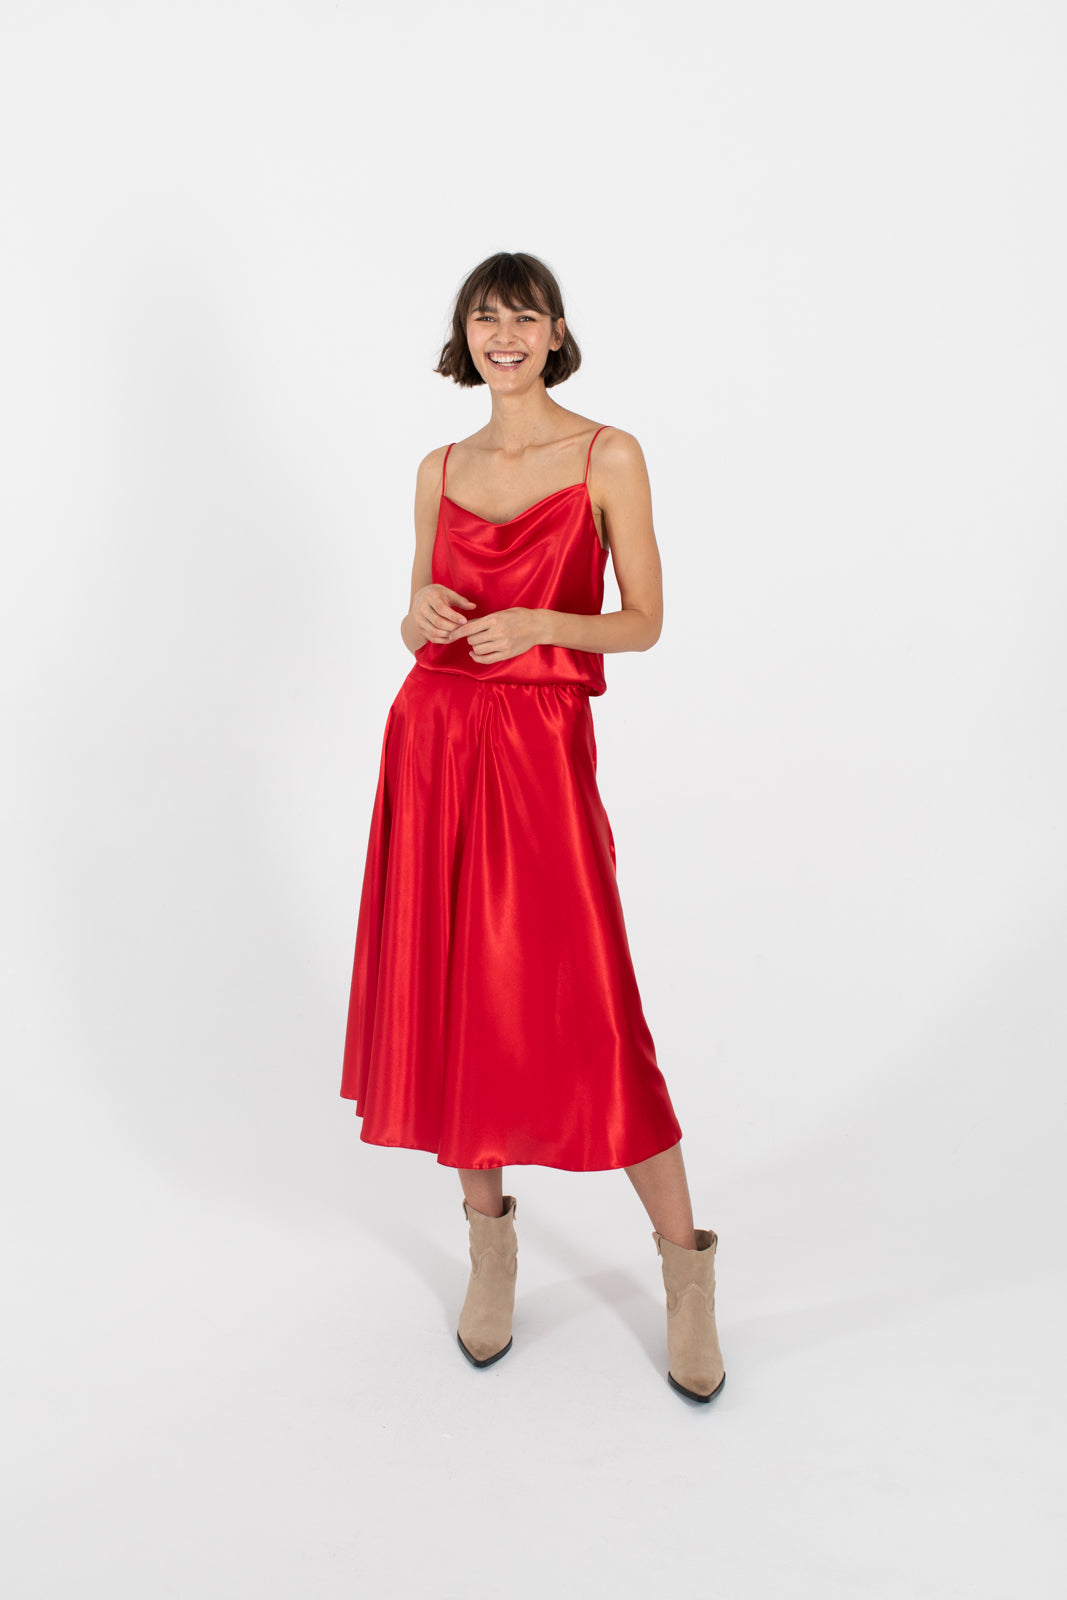 NUDIST-Deep-red-midi-slip-skirt-alternative-silk-bottom-occasion-summer-le-slap.jpg